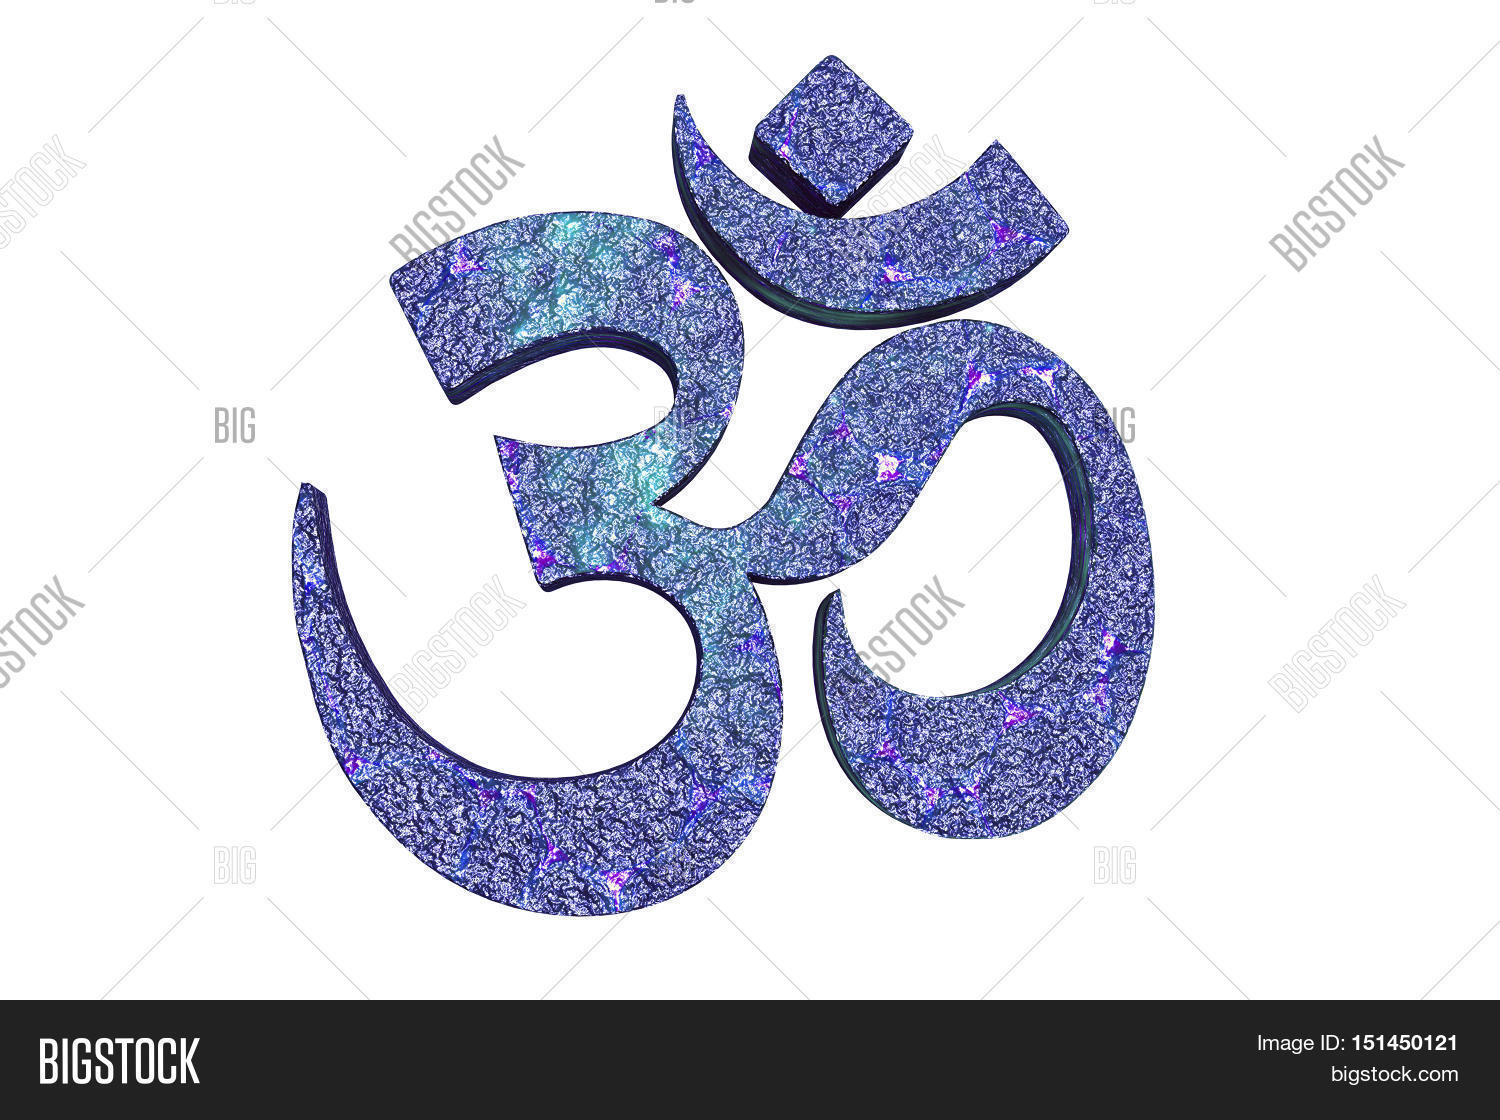 Hindu Word Reading Om Image Photo Free Trial Bigstock